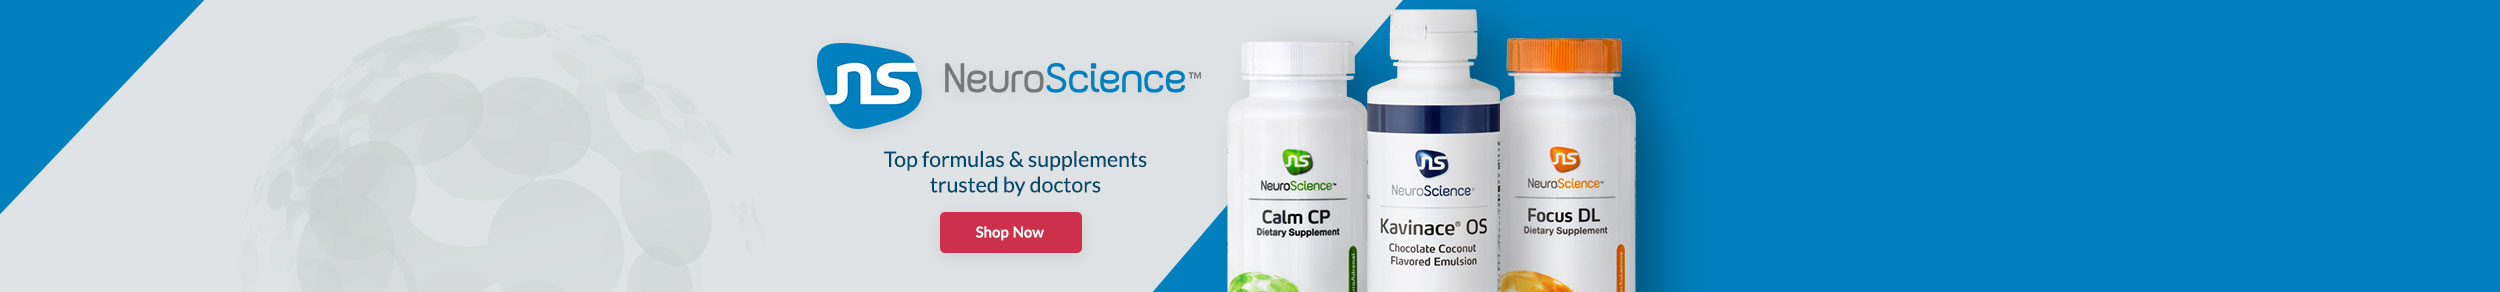 NeuroScience - Top doctor trusted formulas that deliver